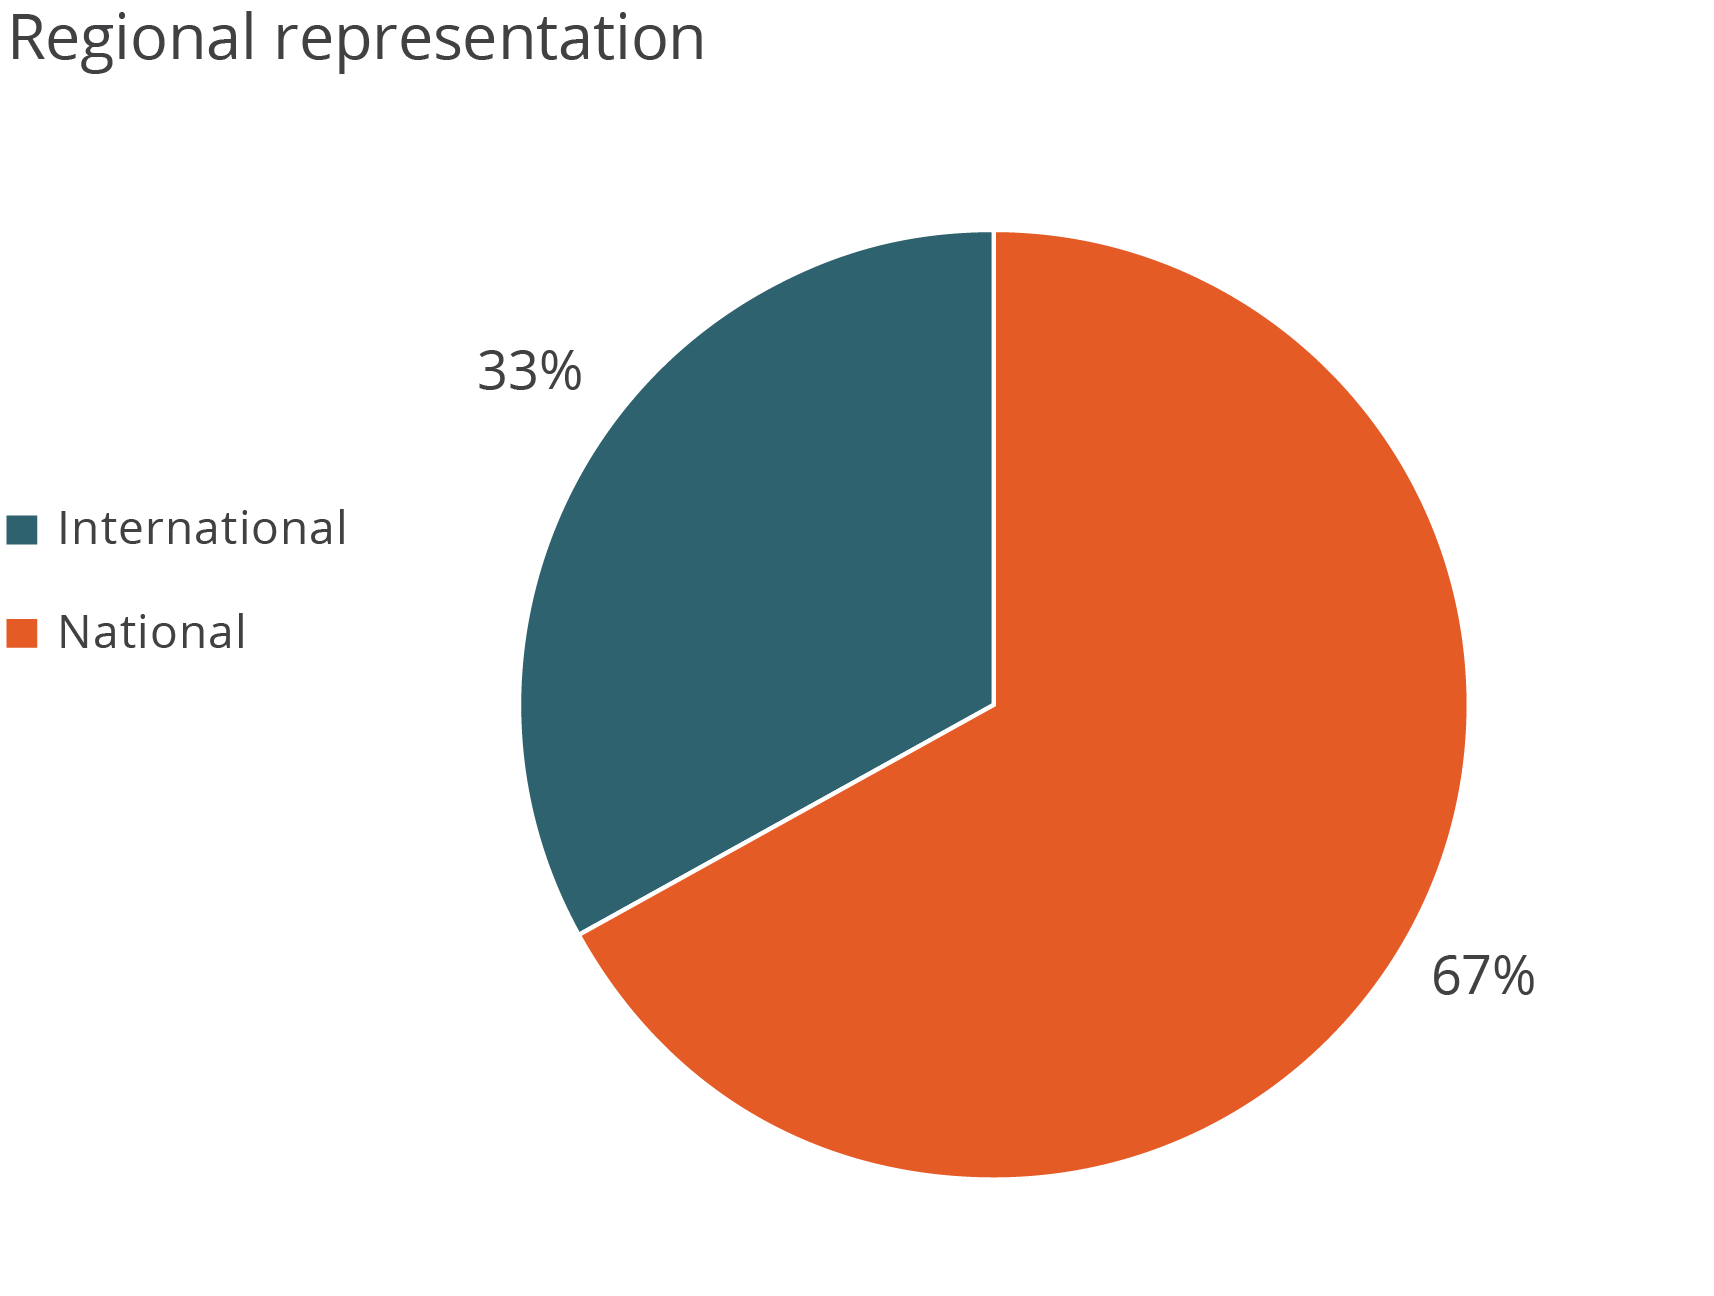 Regional representation: 33% international, 67% national